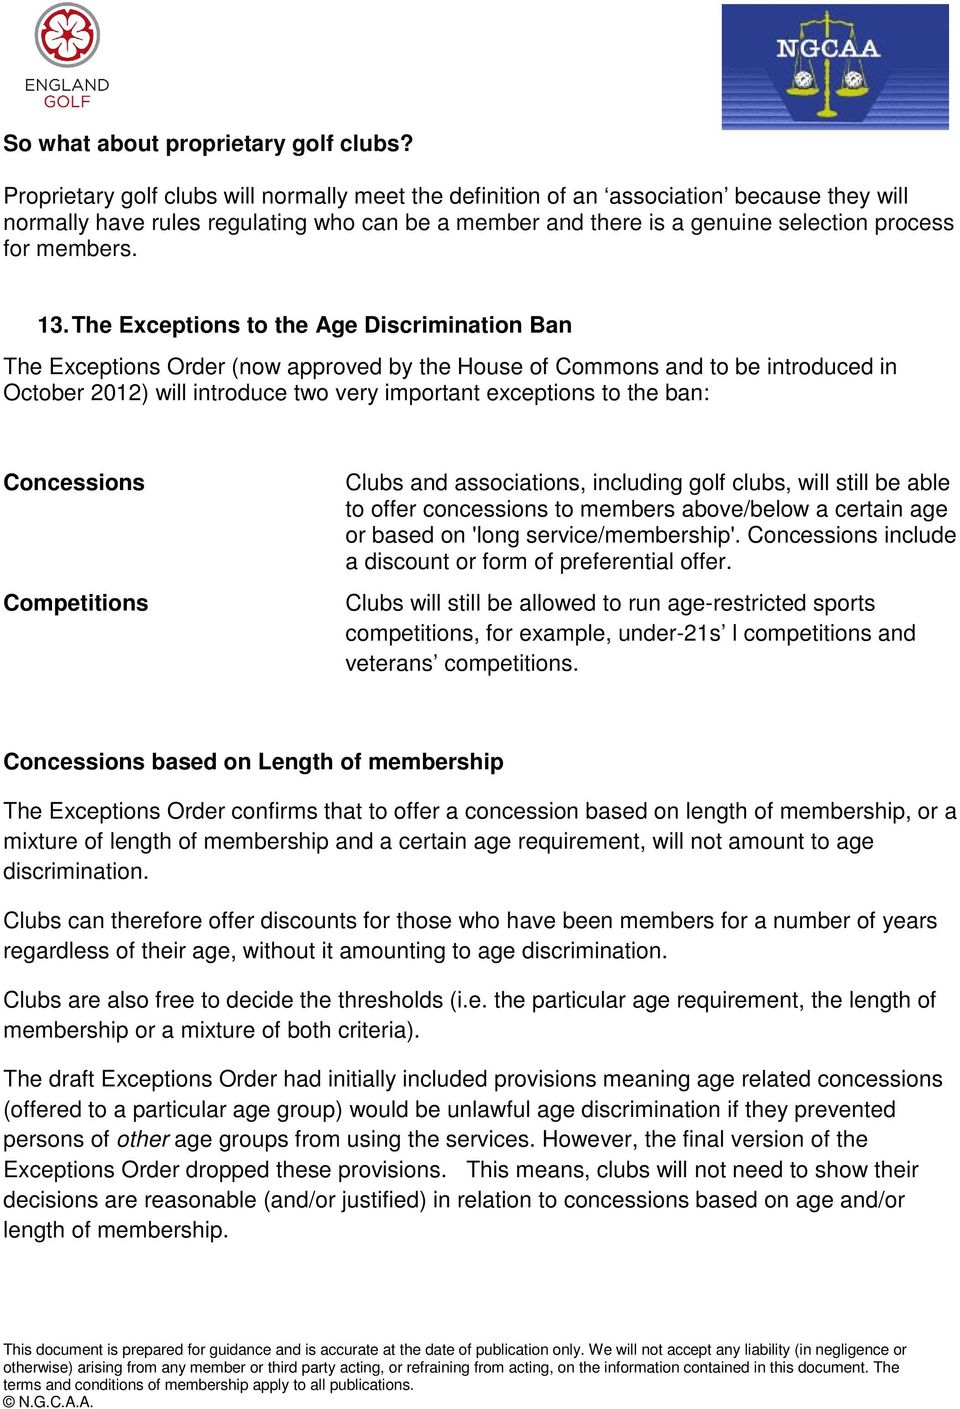 13. The Exceptions to the Age Discrimination Ban The Exceptions Order (now approved by the House of Commons and to be introduced in October 2012) will introduce two very important exceptions to the